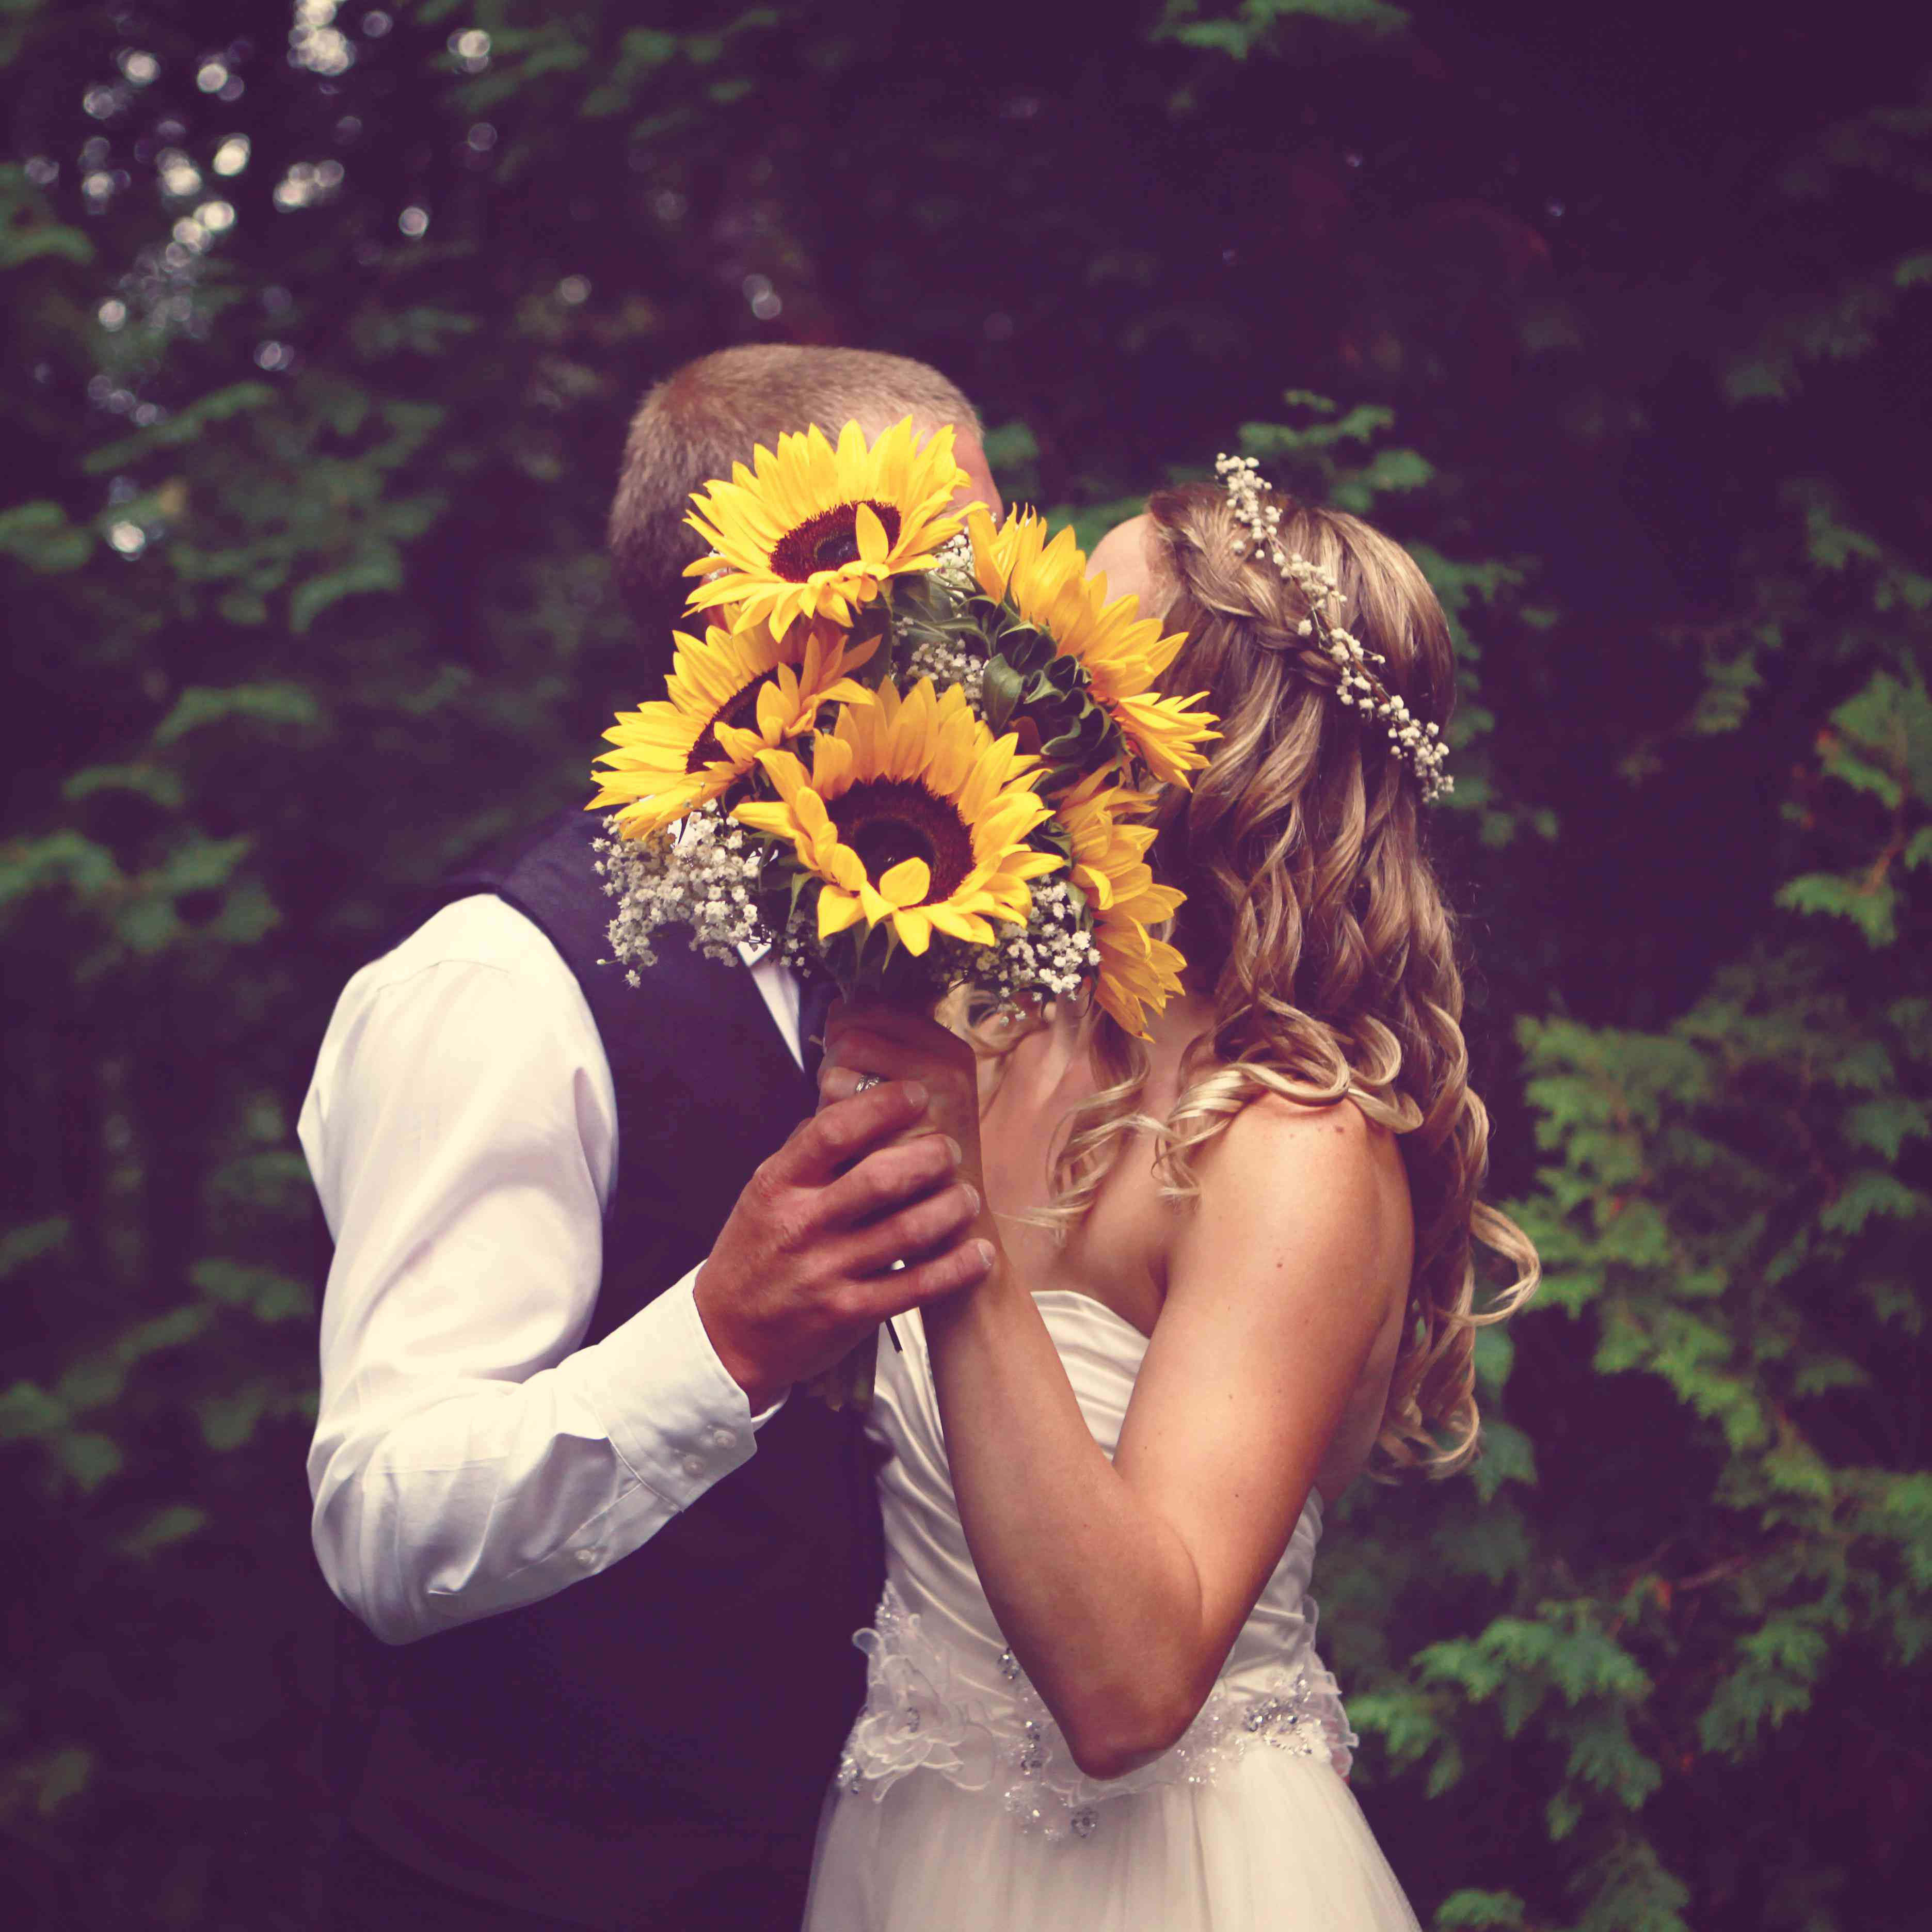 After We're Married, Can My Husband Take My Last Name?